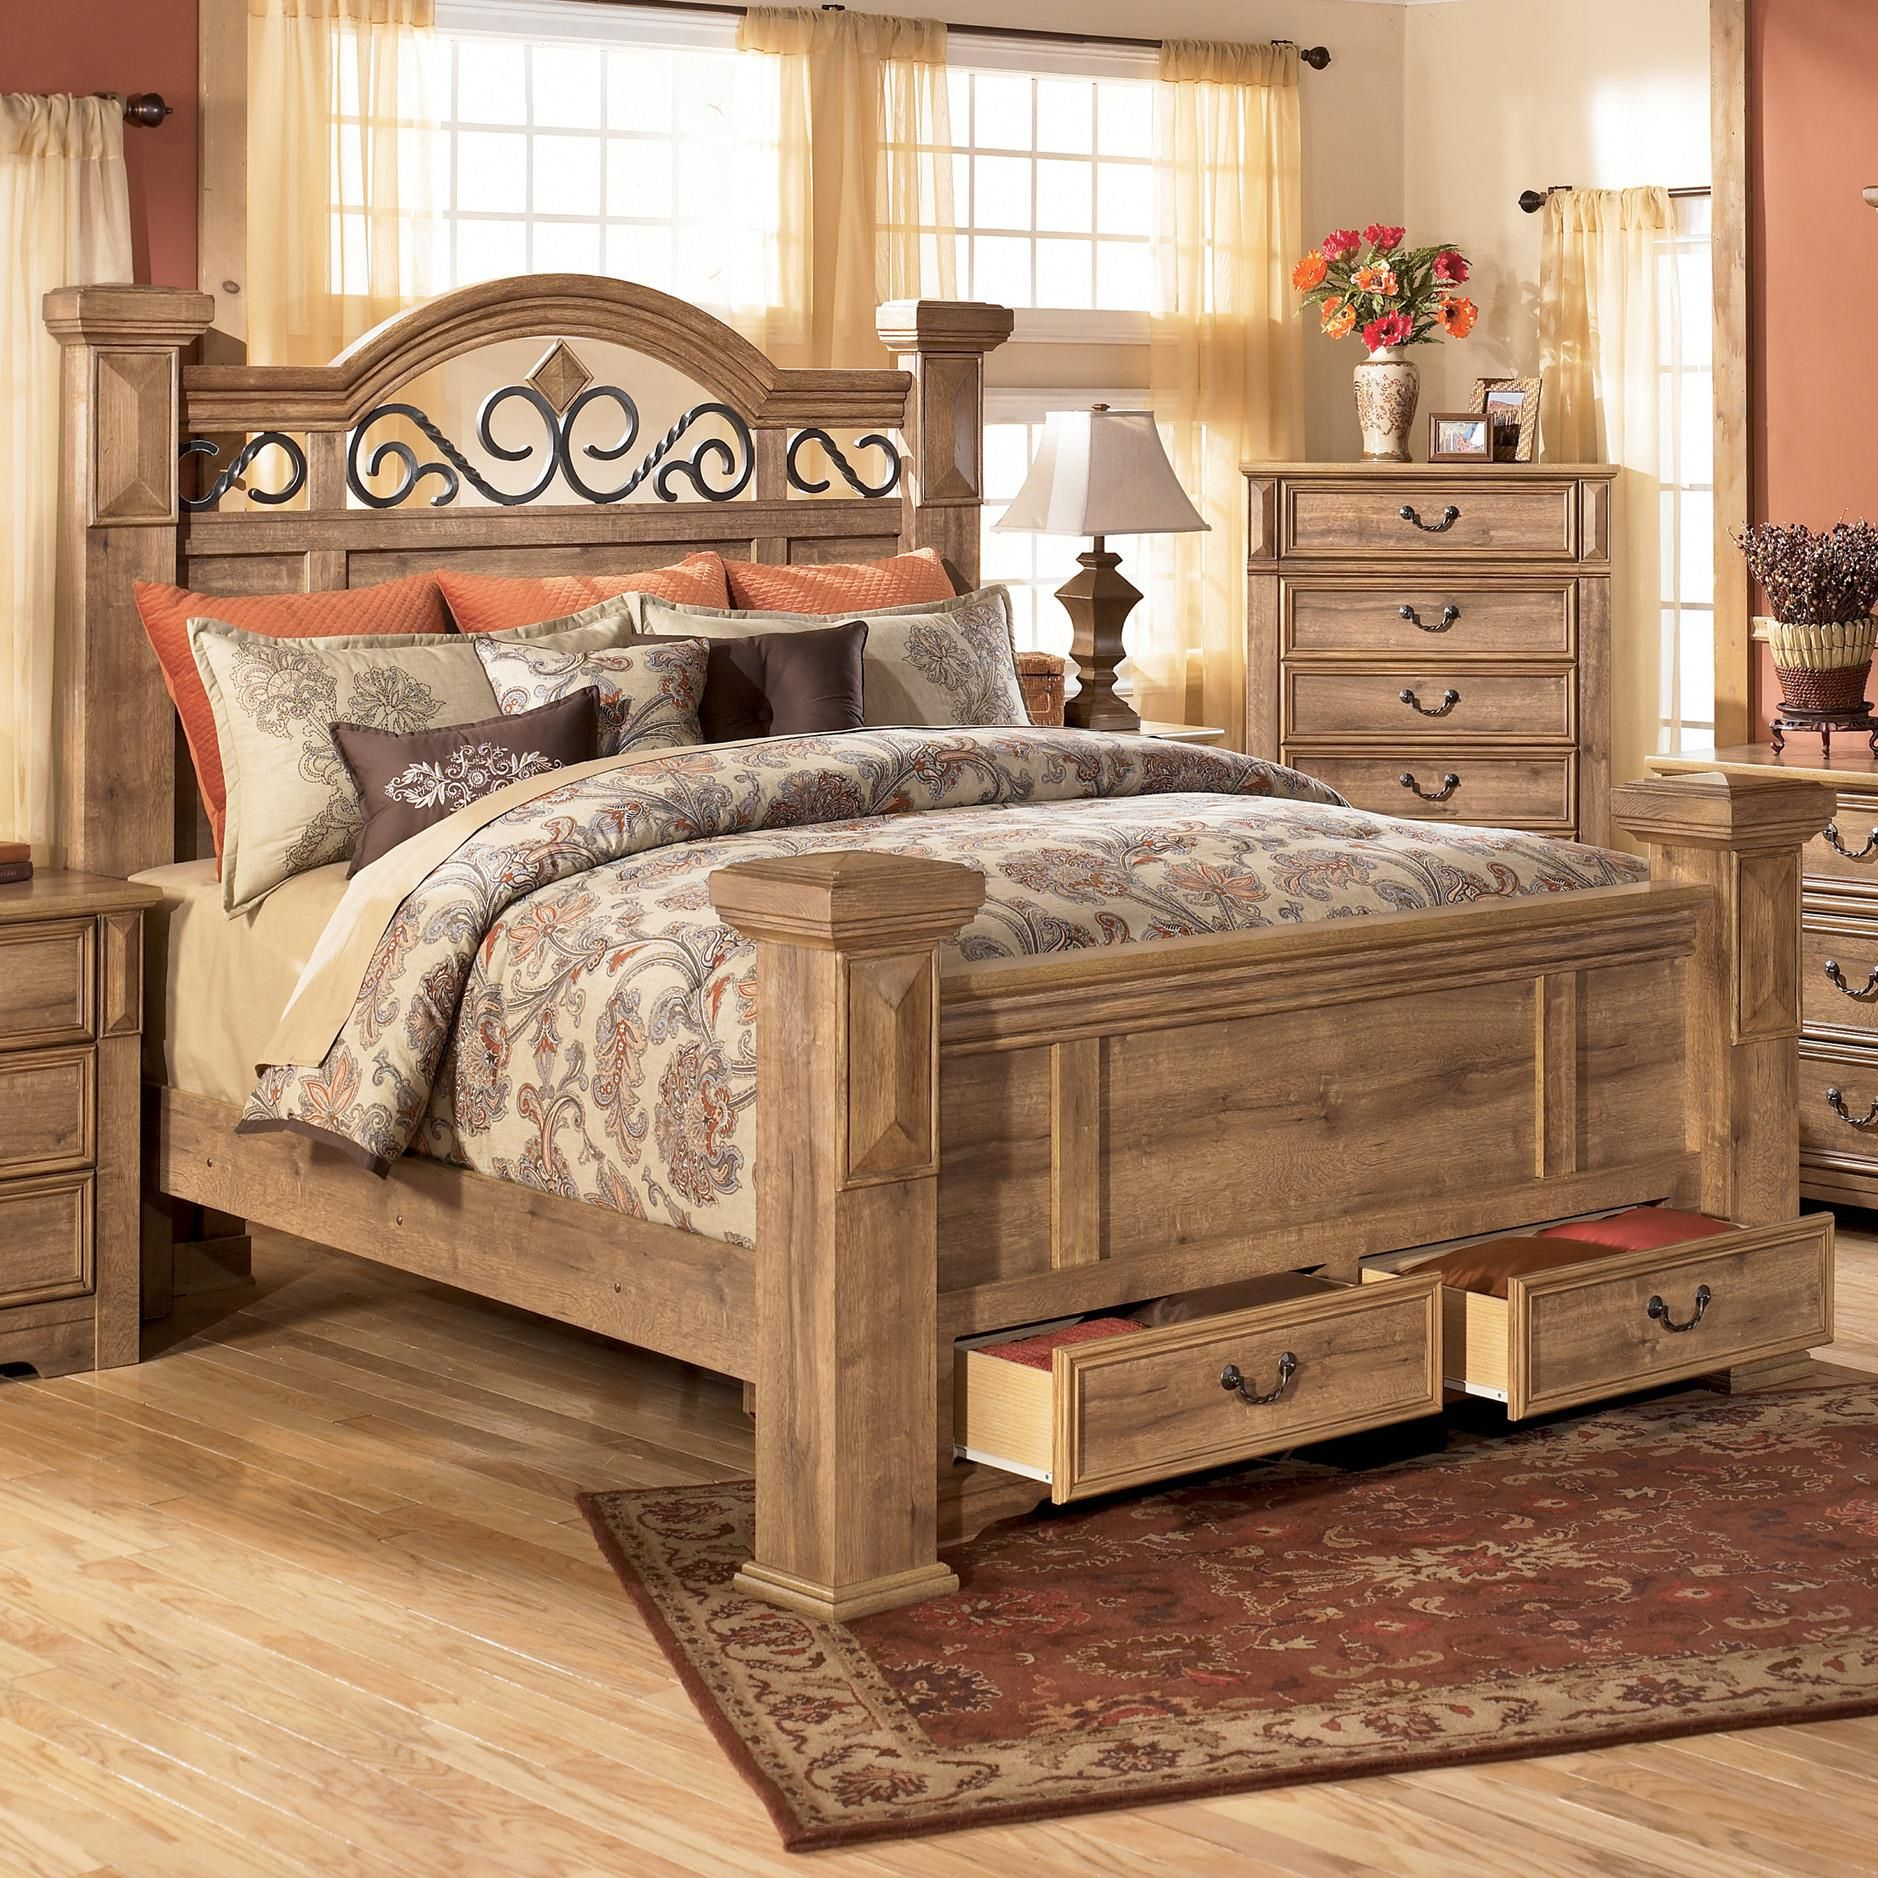 Whimbrel forge king poster storage bed by signature design for Bedroom furniture designs pictures in pakistan